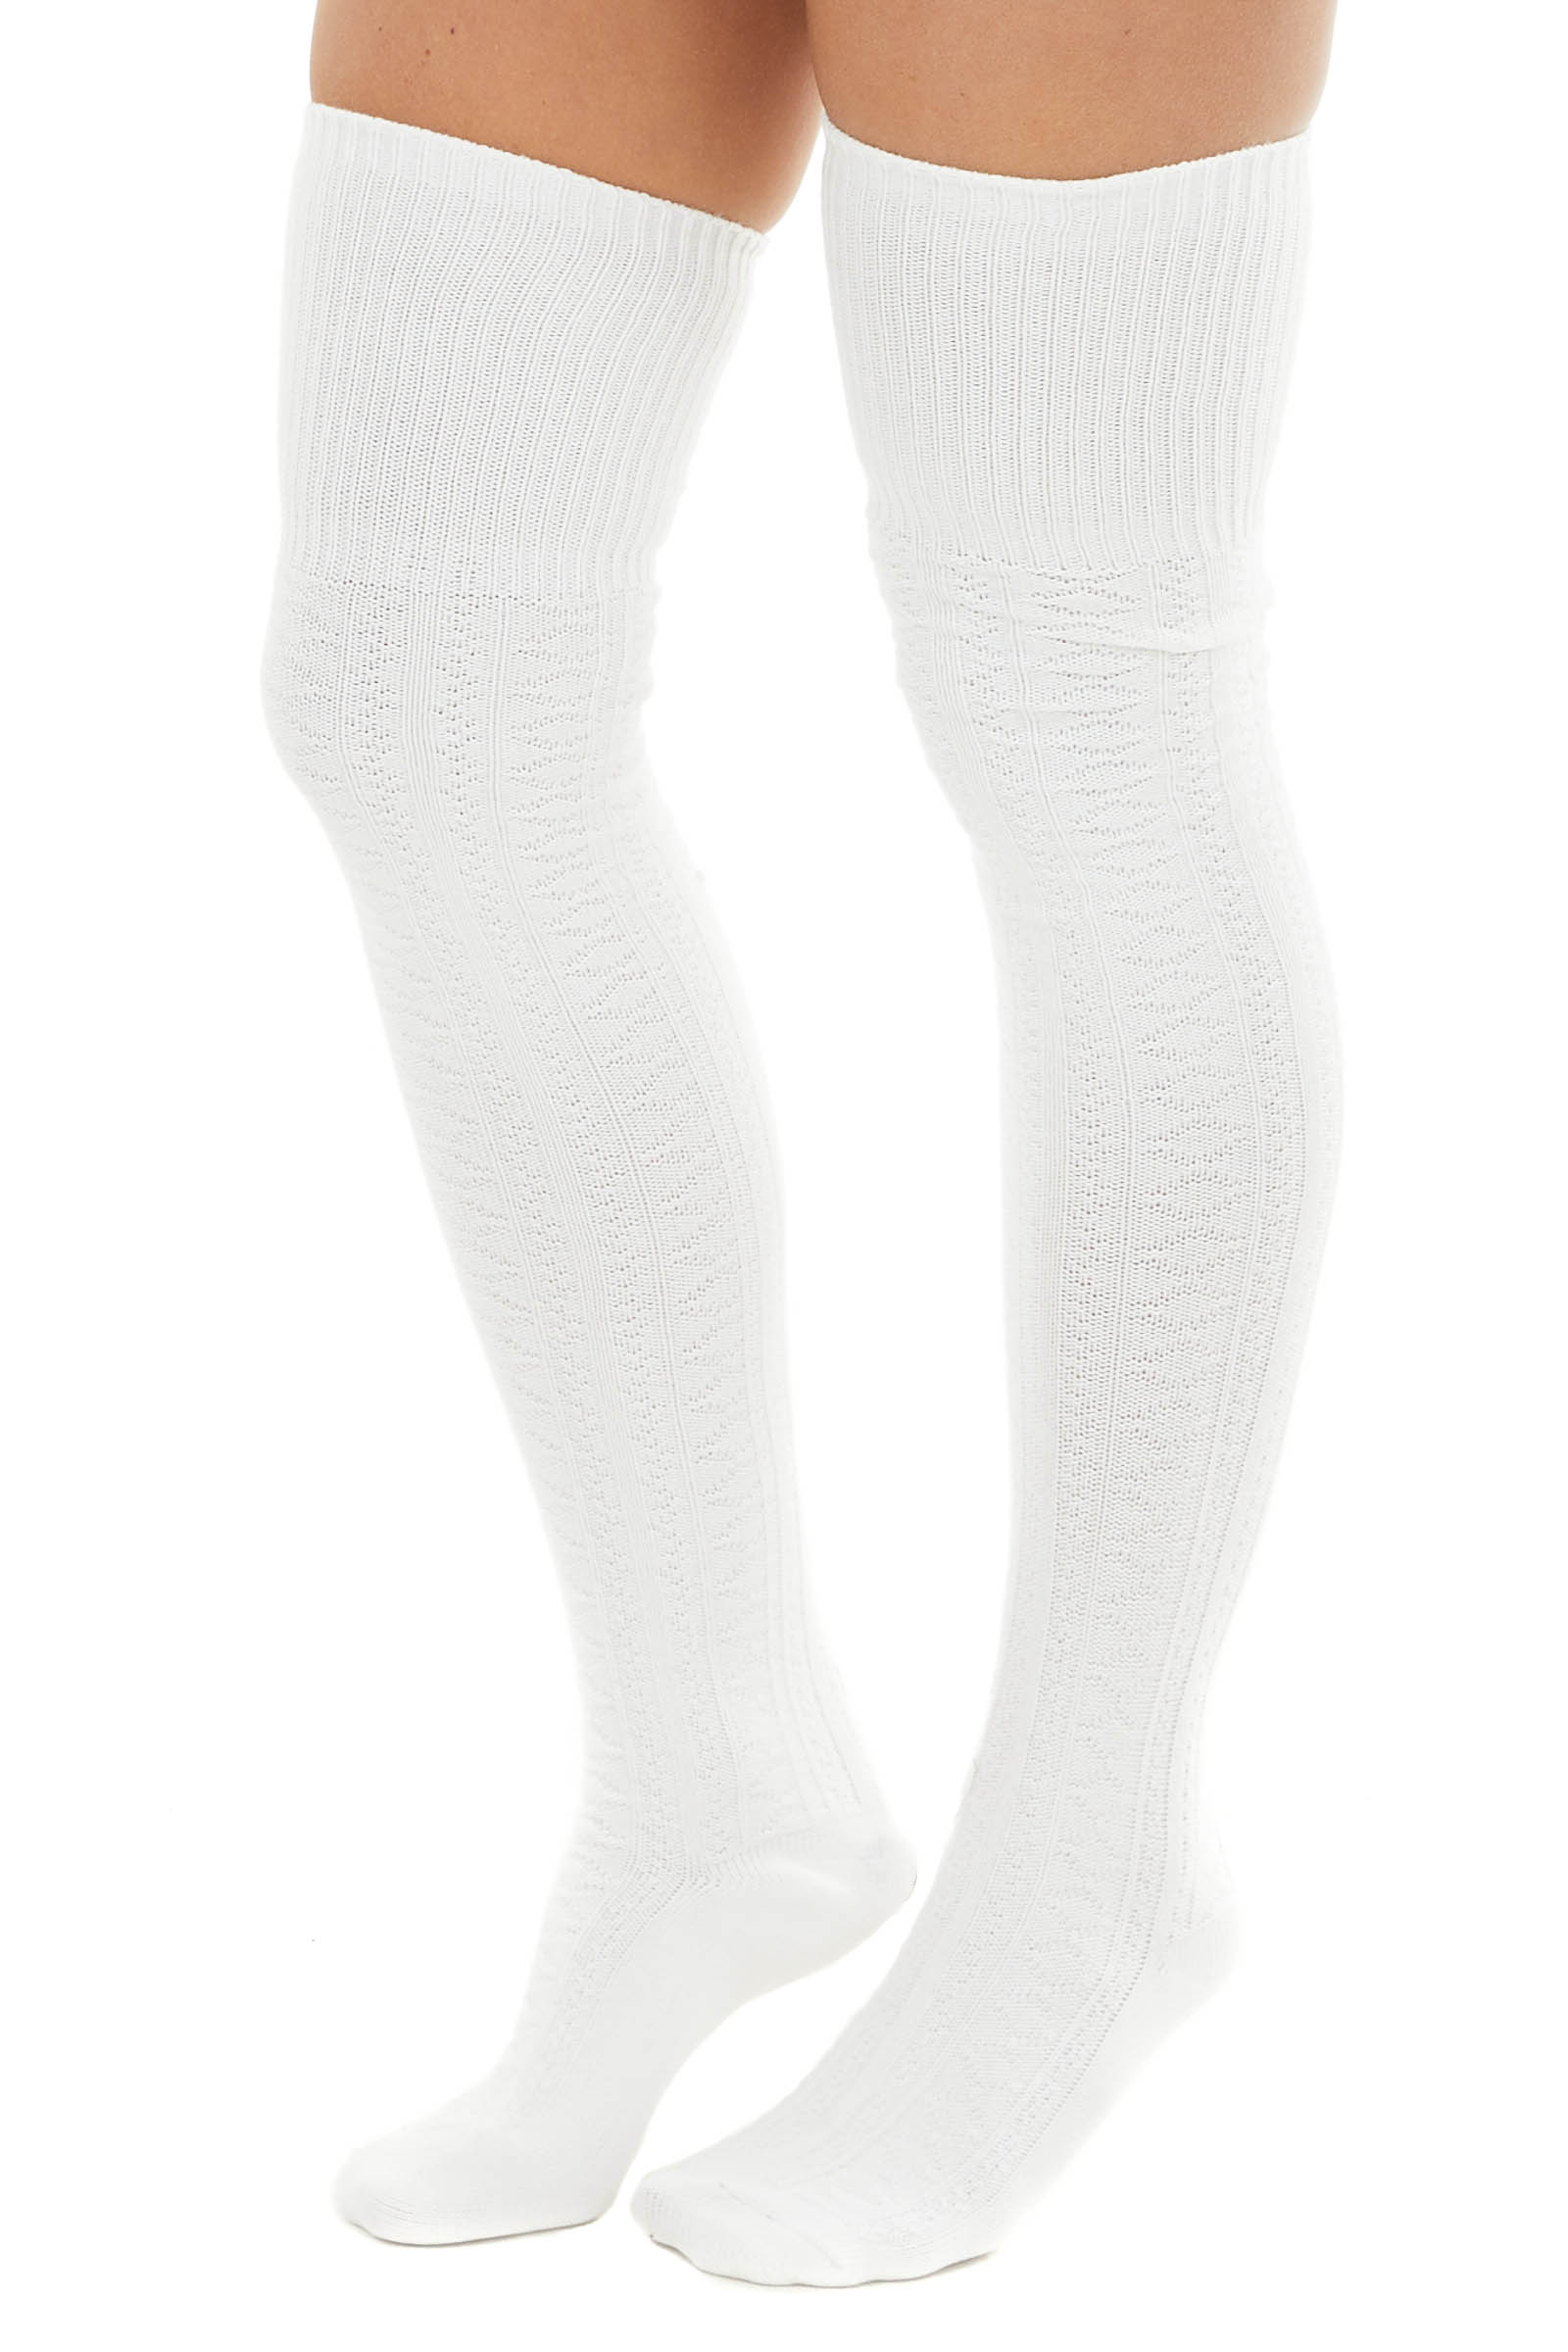 Ivory Small Cable Knit Over the Knee High Fashion Socks